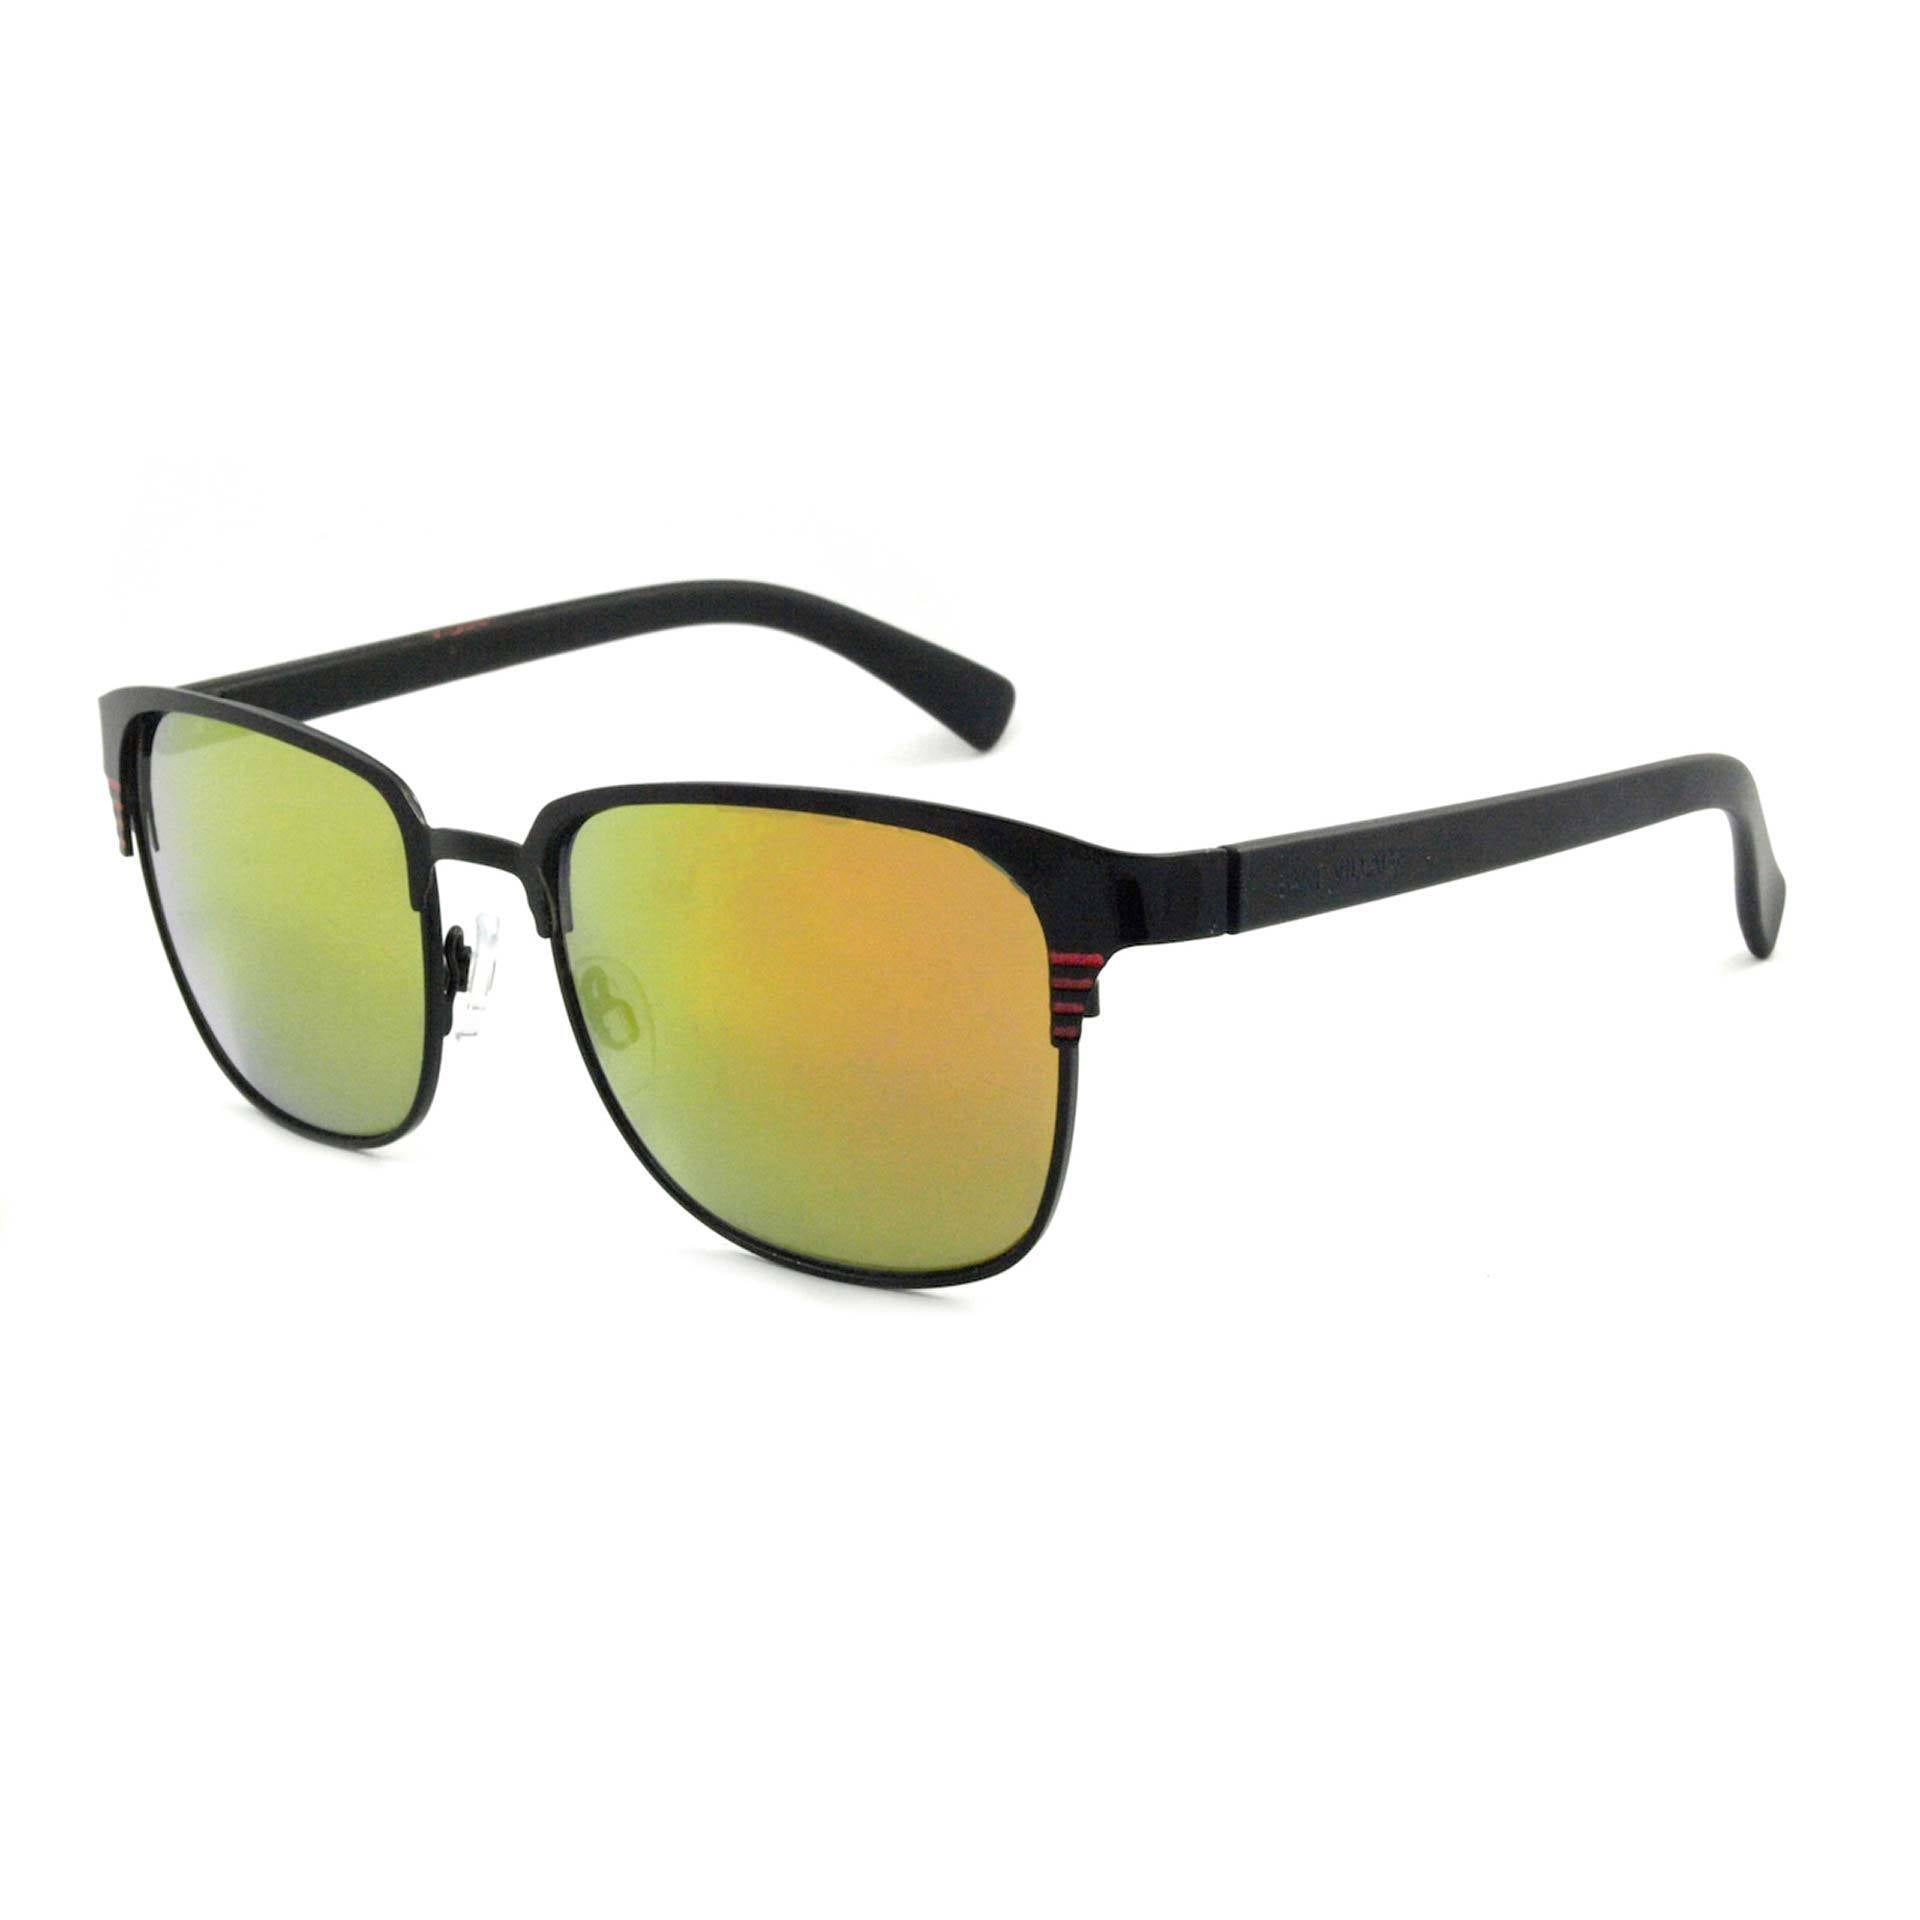 East Village Metal Joel Sunglasses With Gold Flash Mirror Lens